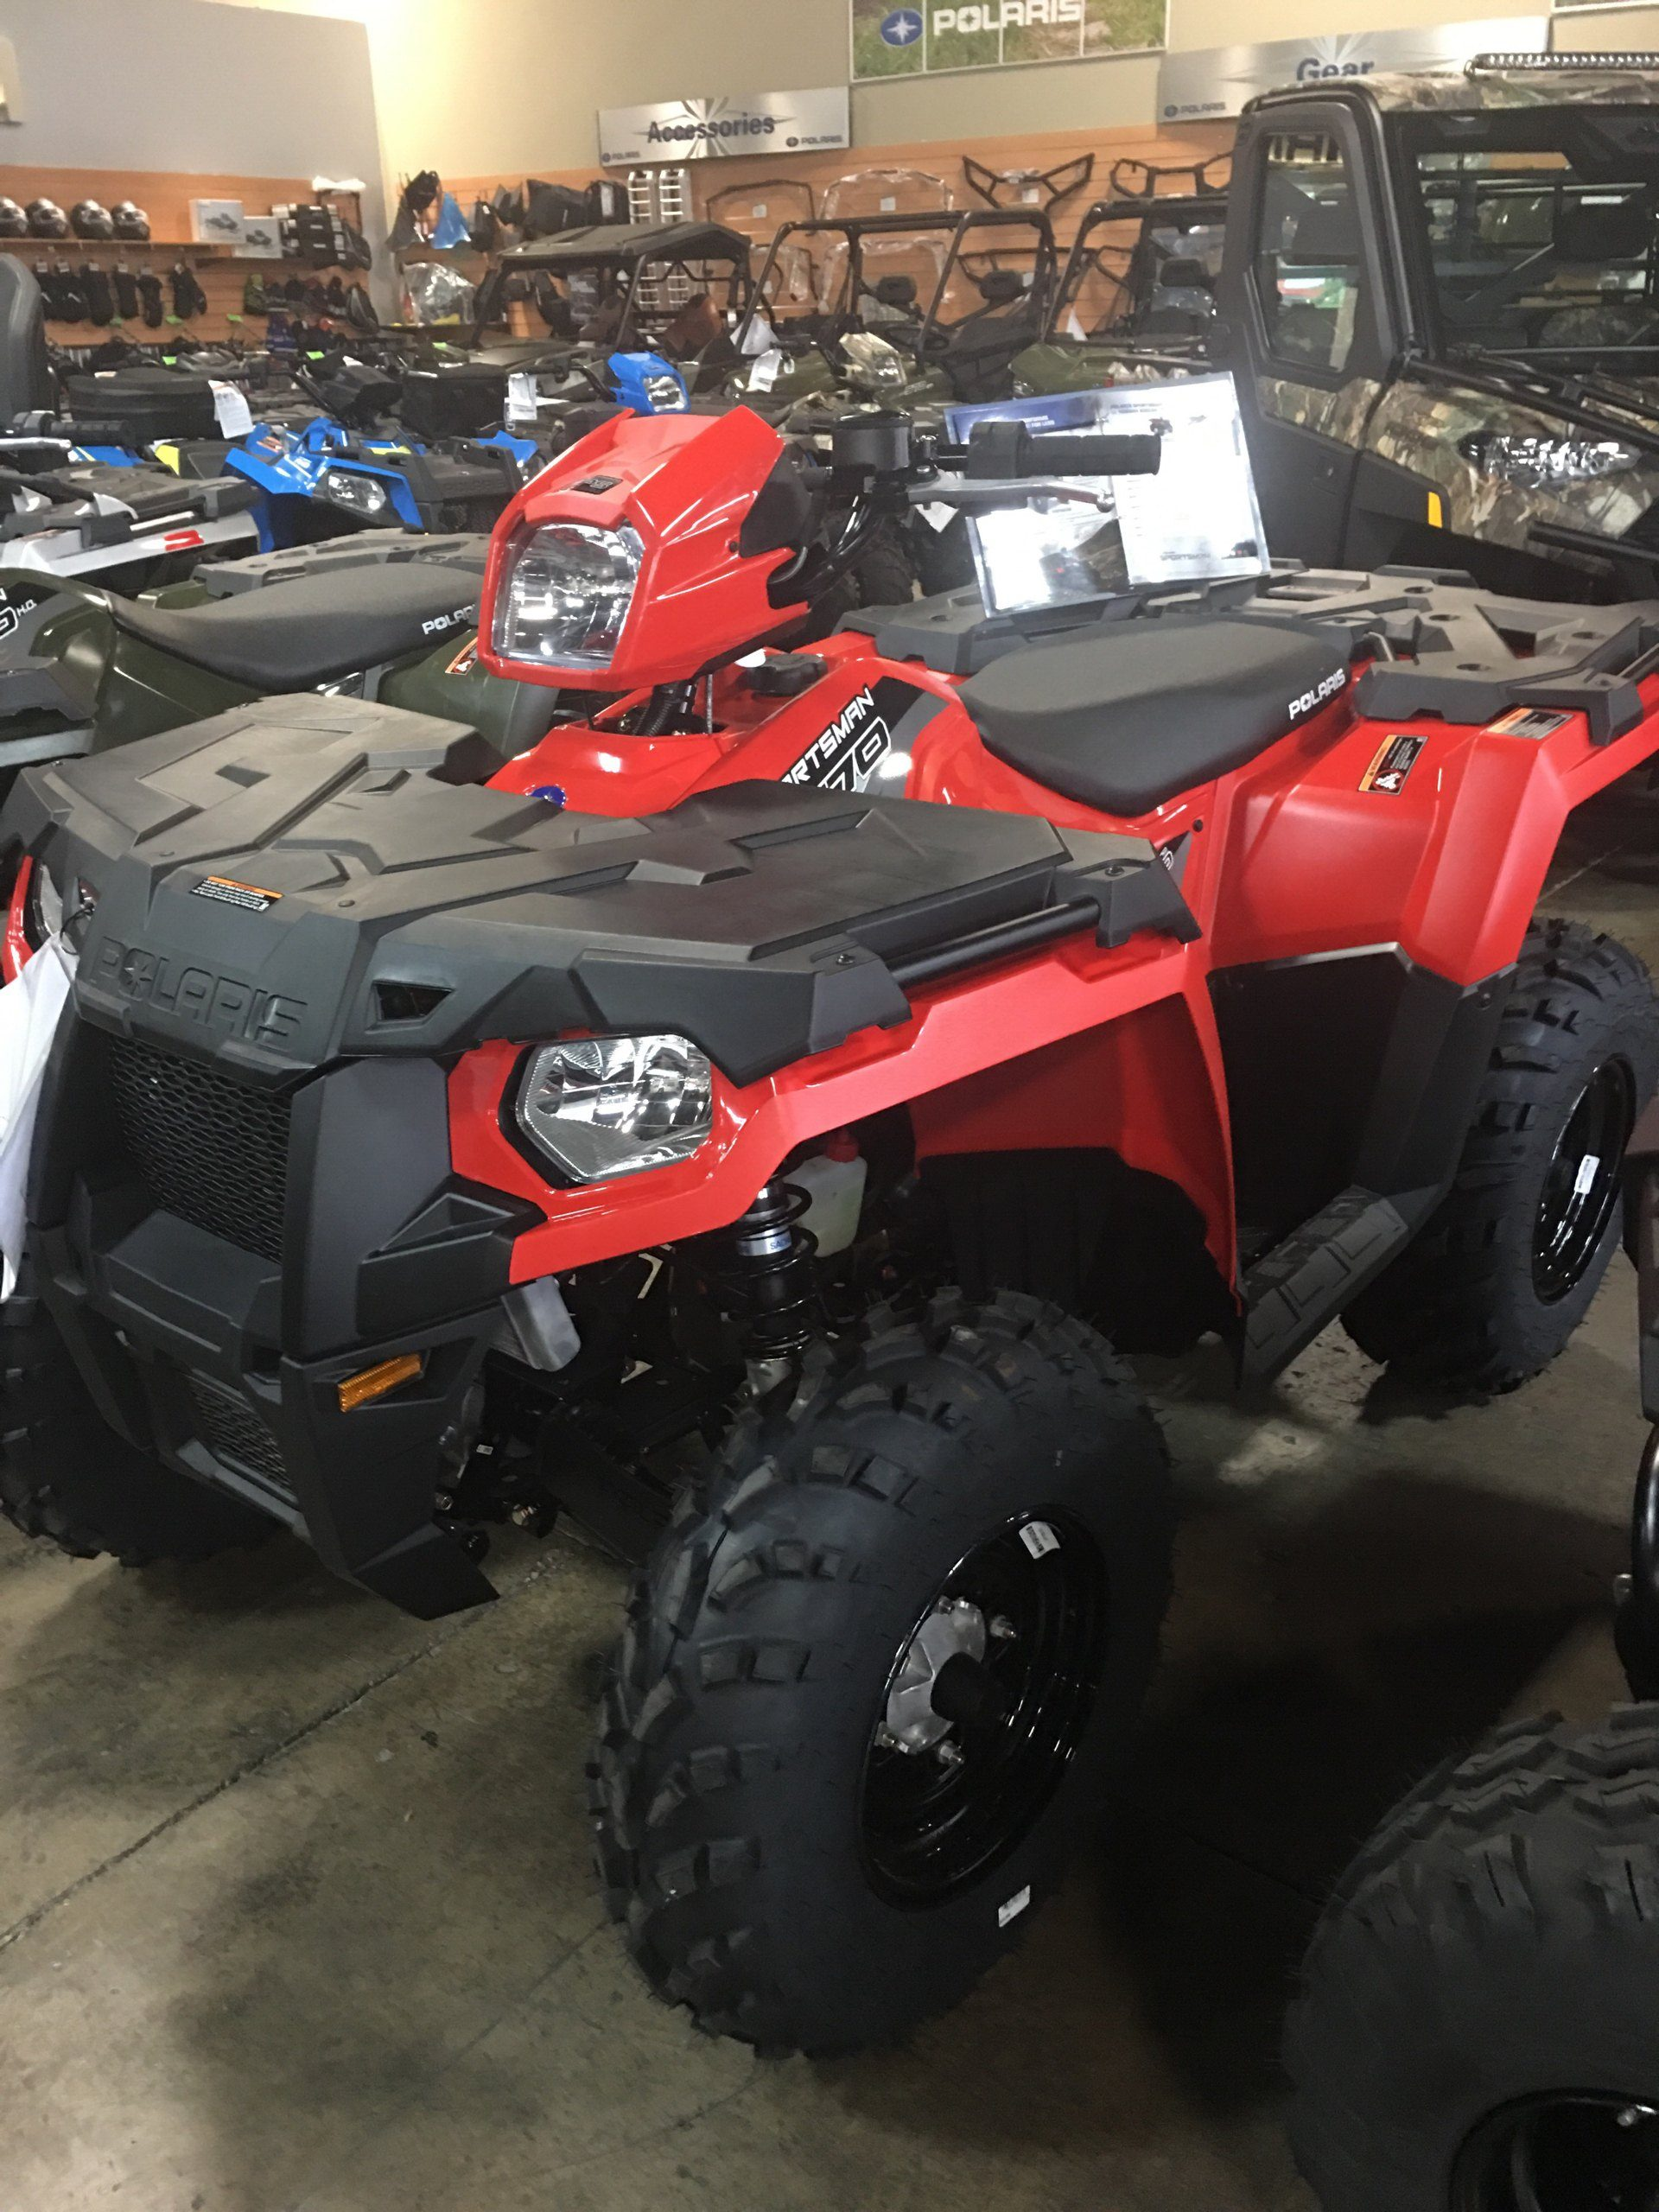 2018 polaris sportsman 570 eps atvs woodstock illinois a523 2018 polaris sportsman 570 eps in woodstock illinois publicscrutiny Gallery